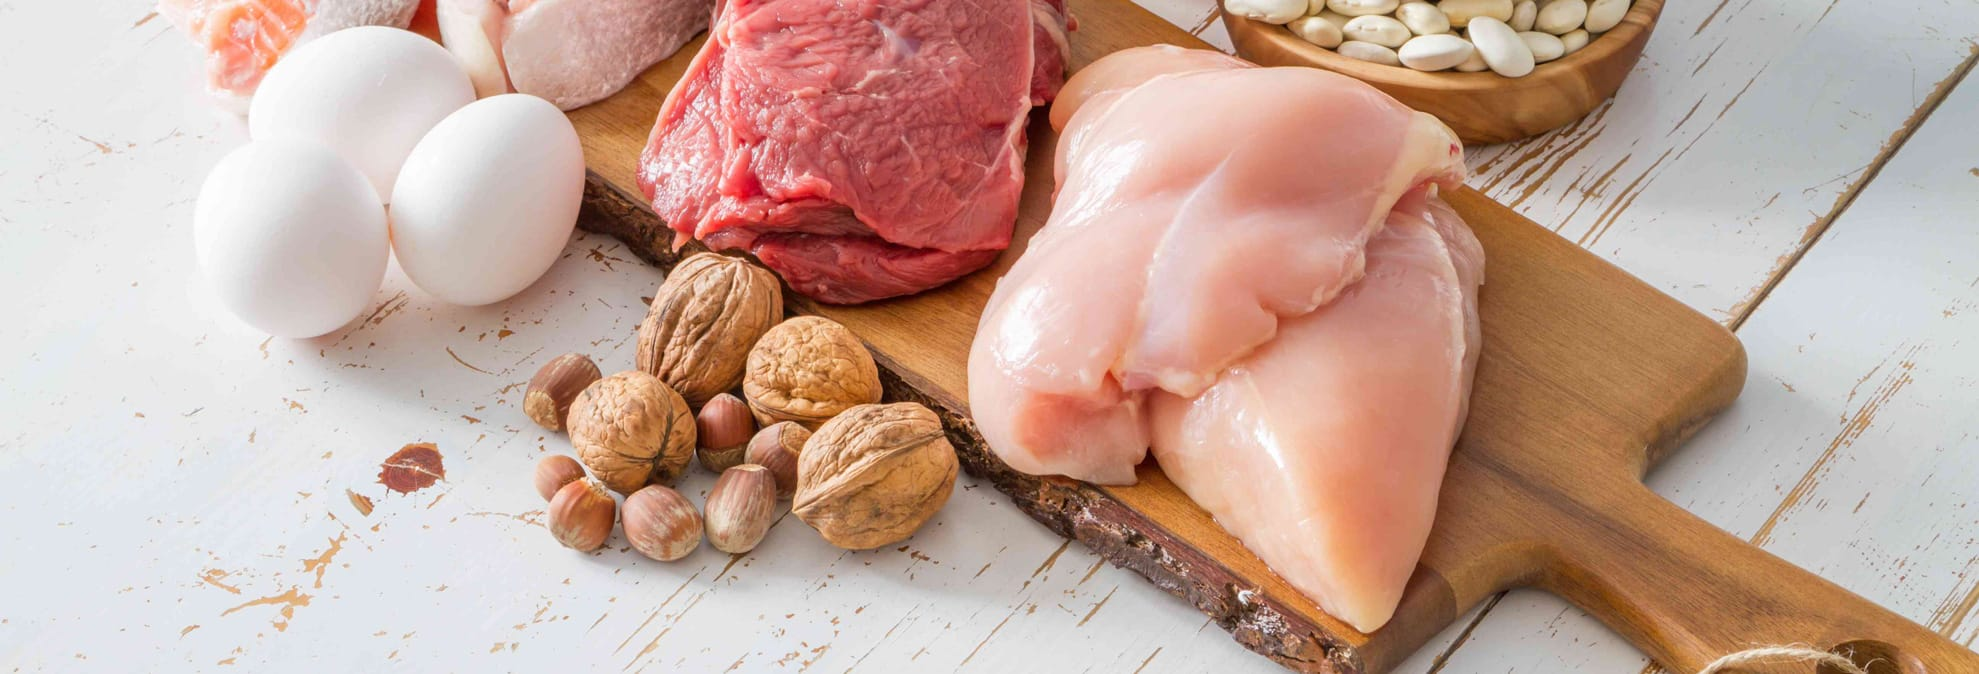 The Truth About a High-Protein, Low-Carb Diet